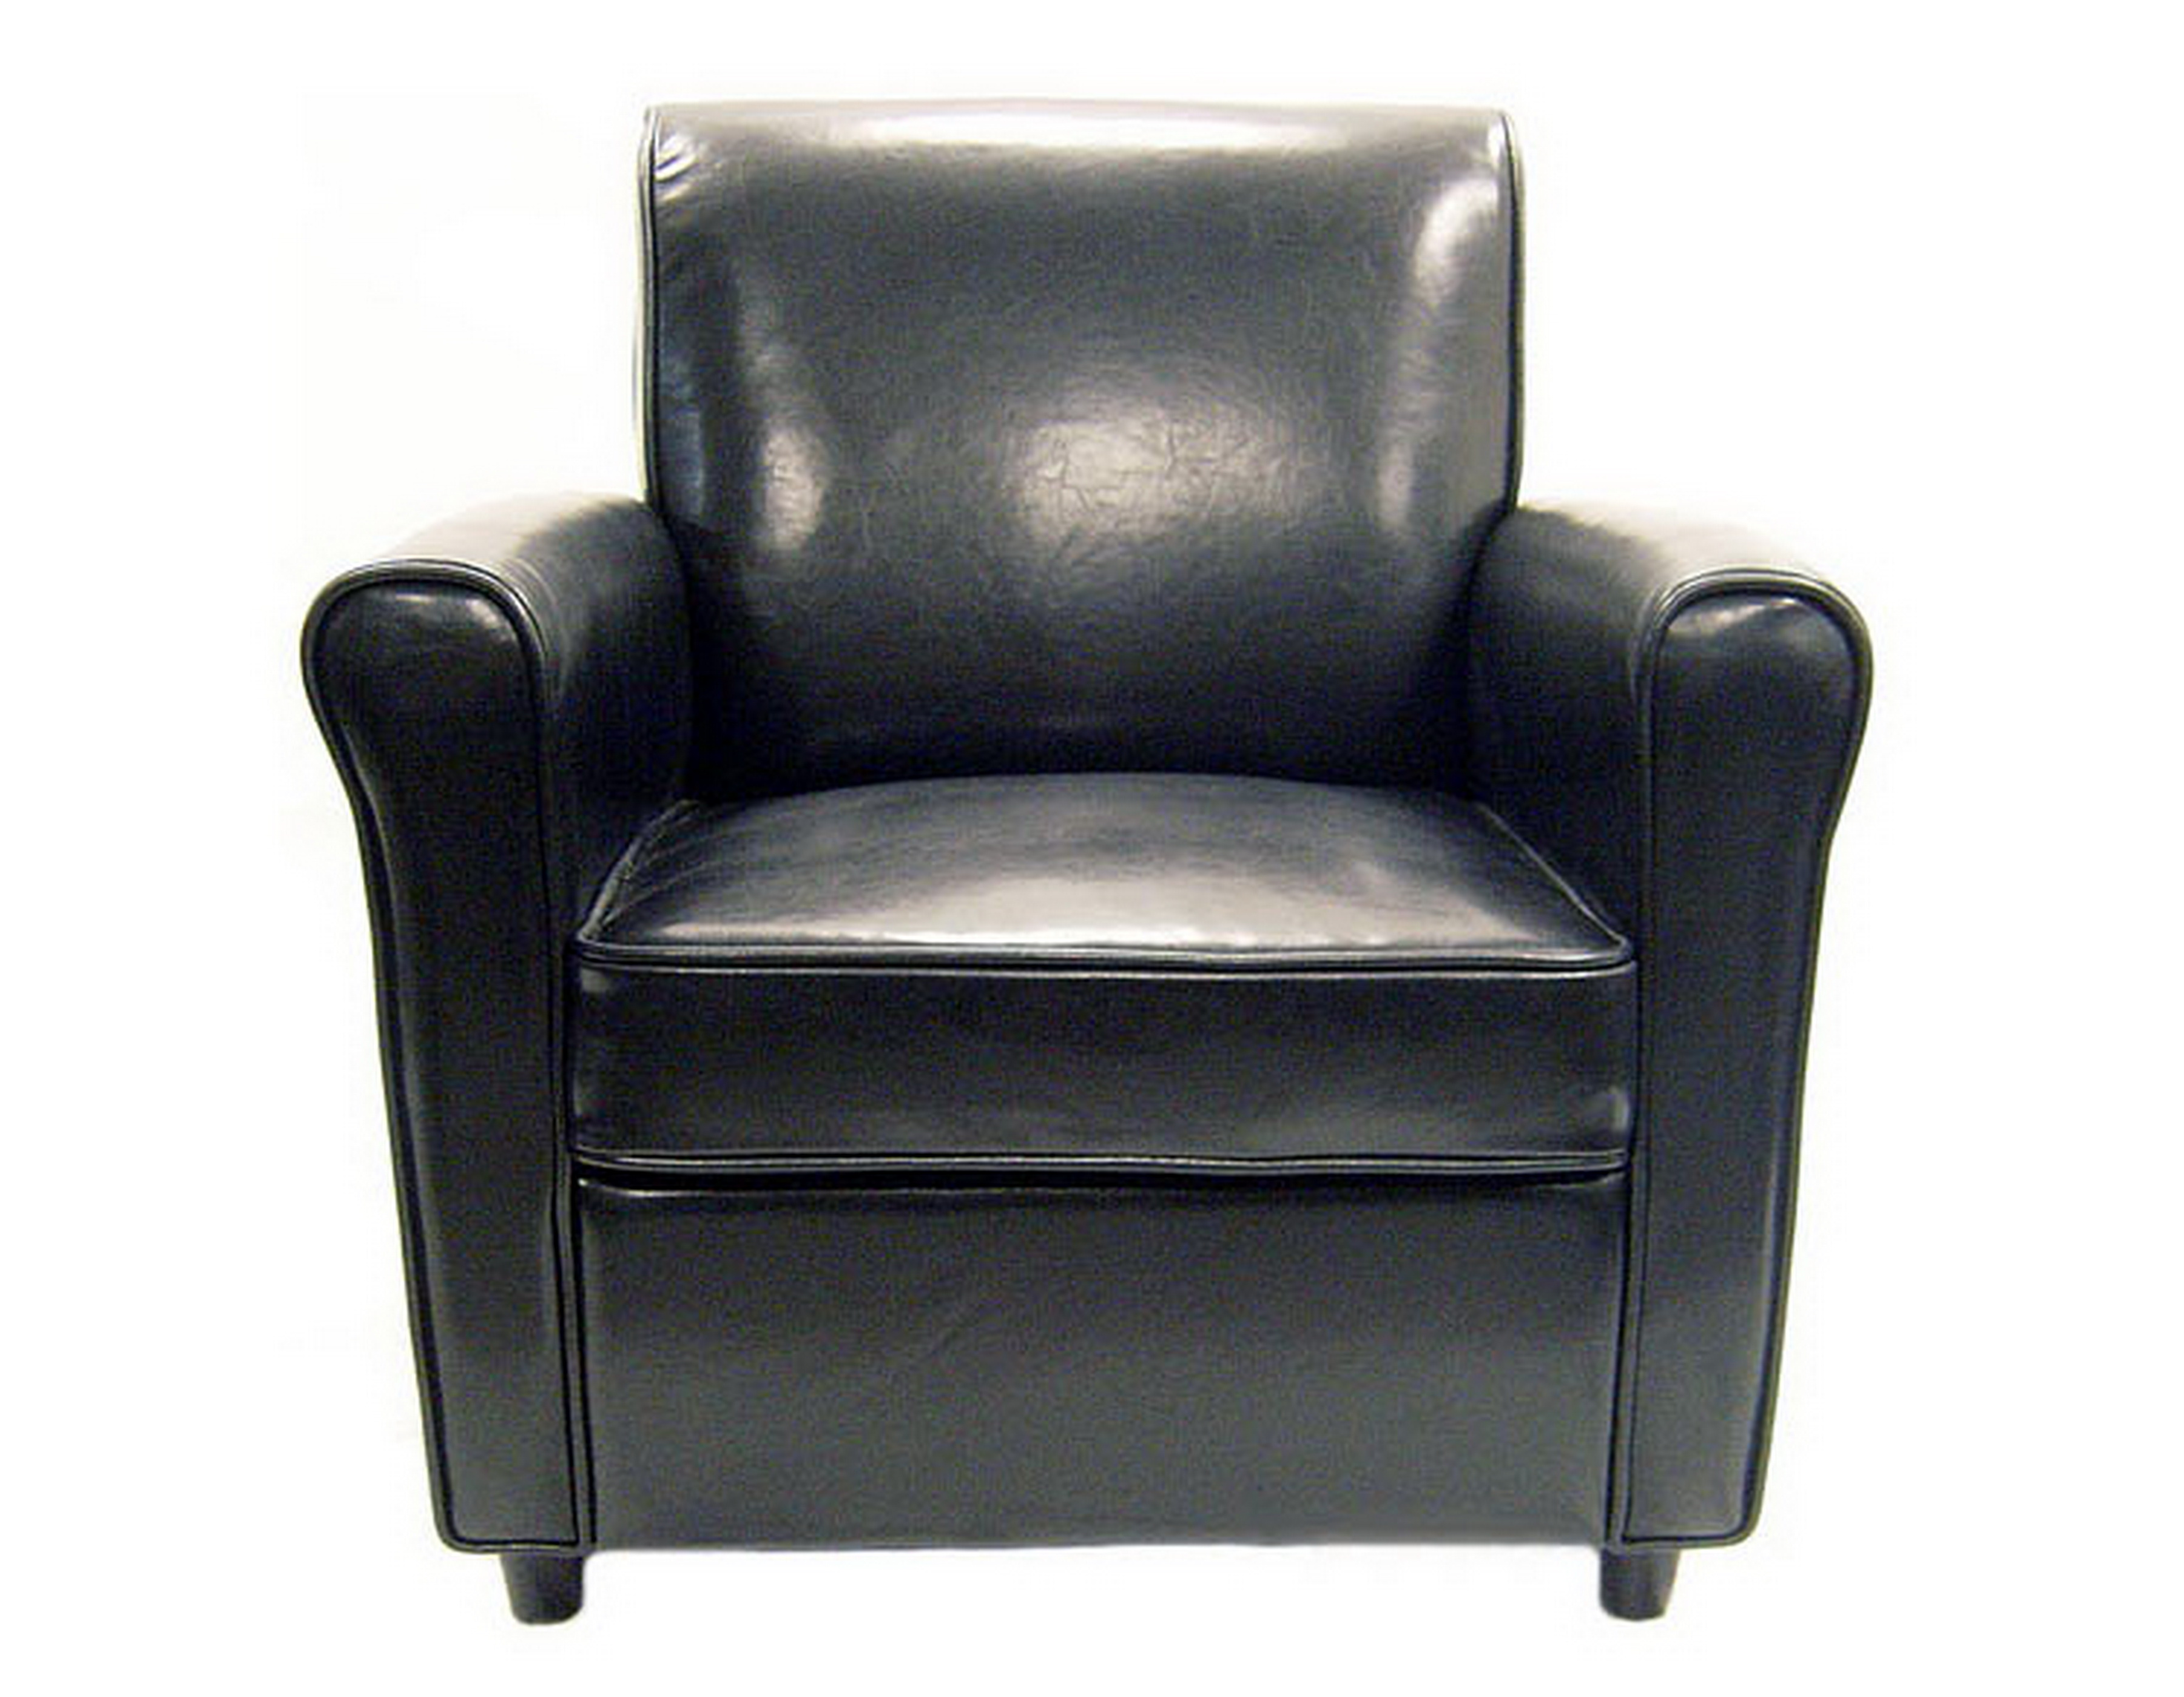 Red Wingback Chair Furniture > Living Room Furniture > Chair > Real Good Chair